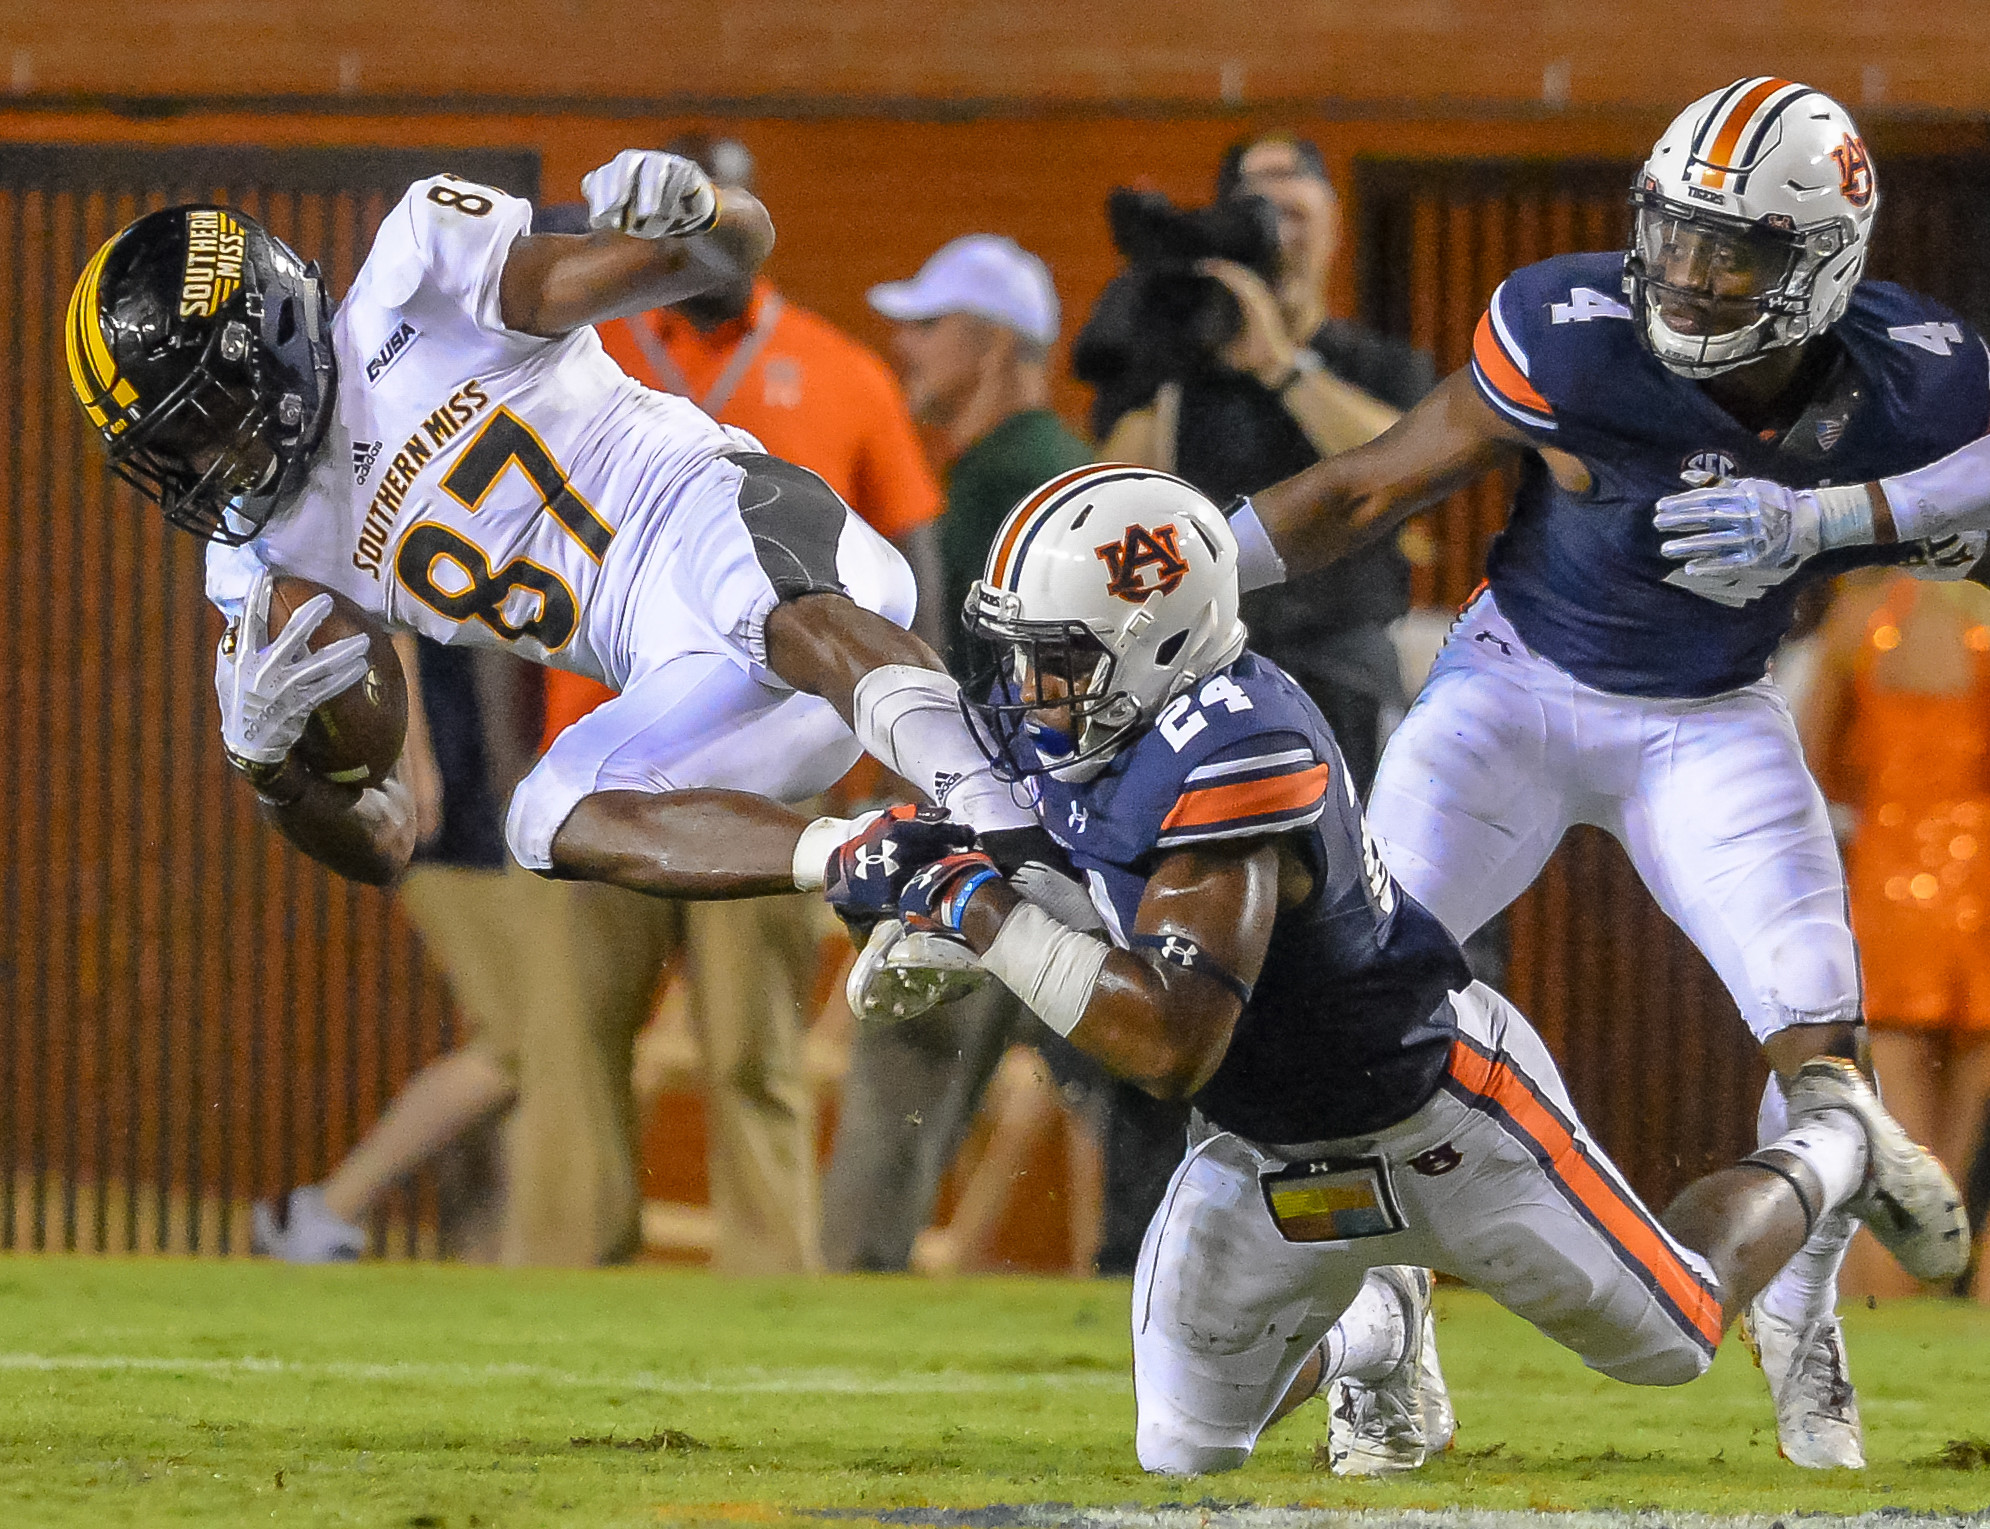 Southern Miss Golden Eagles wide receiver Tim Jones (87) is tackled by Auburn Tigers defensive back Daniel Thomas (24) during the second half of Saturday's game, at Jordan Hare Stadium in Auburn AL. Daily Mountain Eagle -  Jeff Johnsey